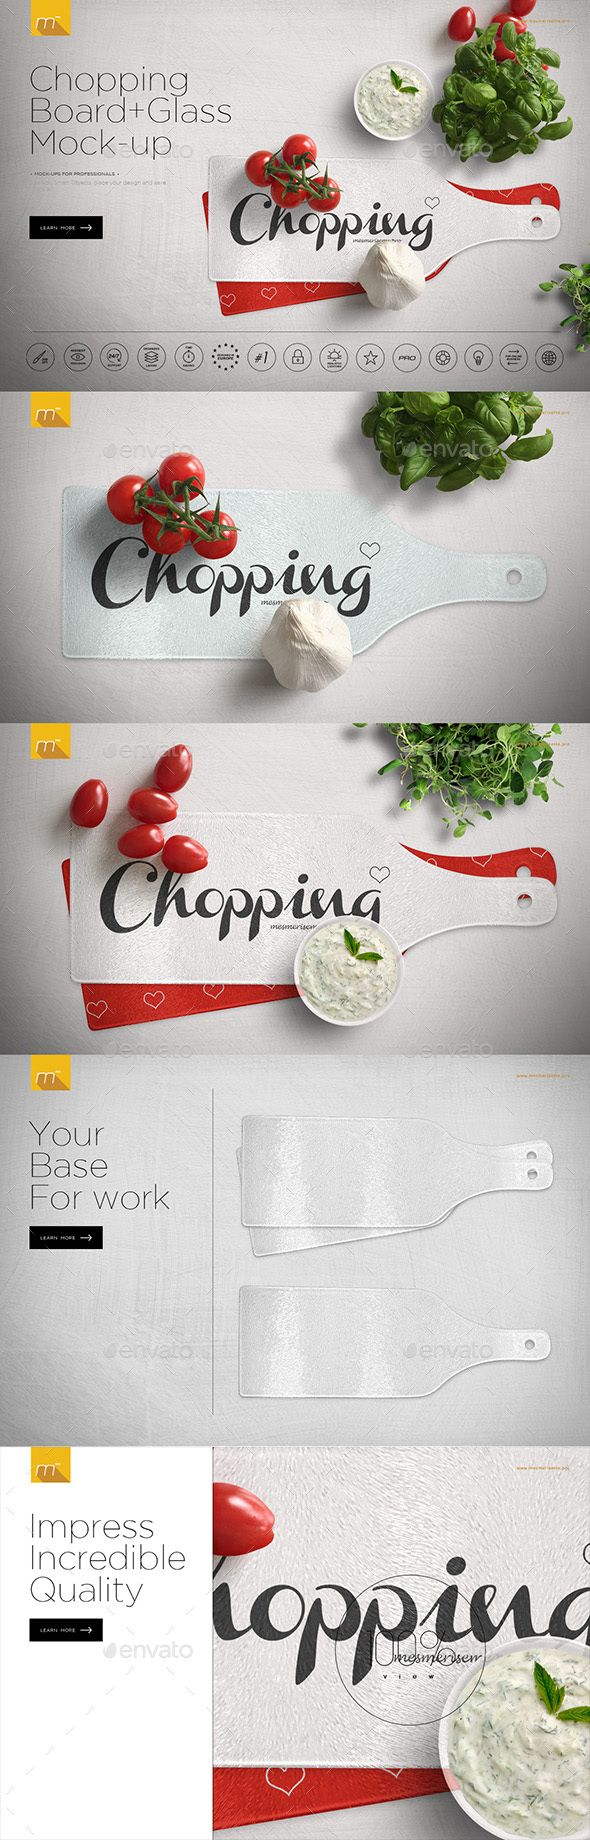 Glass Chopping Board Mock-up. Download here: https://graphicriver.net/item/glass-chopping-board-mockup/17493922?ref=ksioks